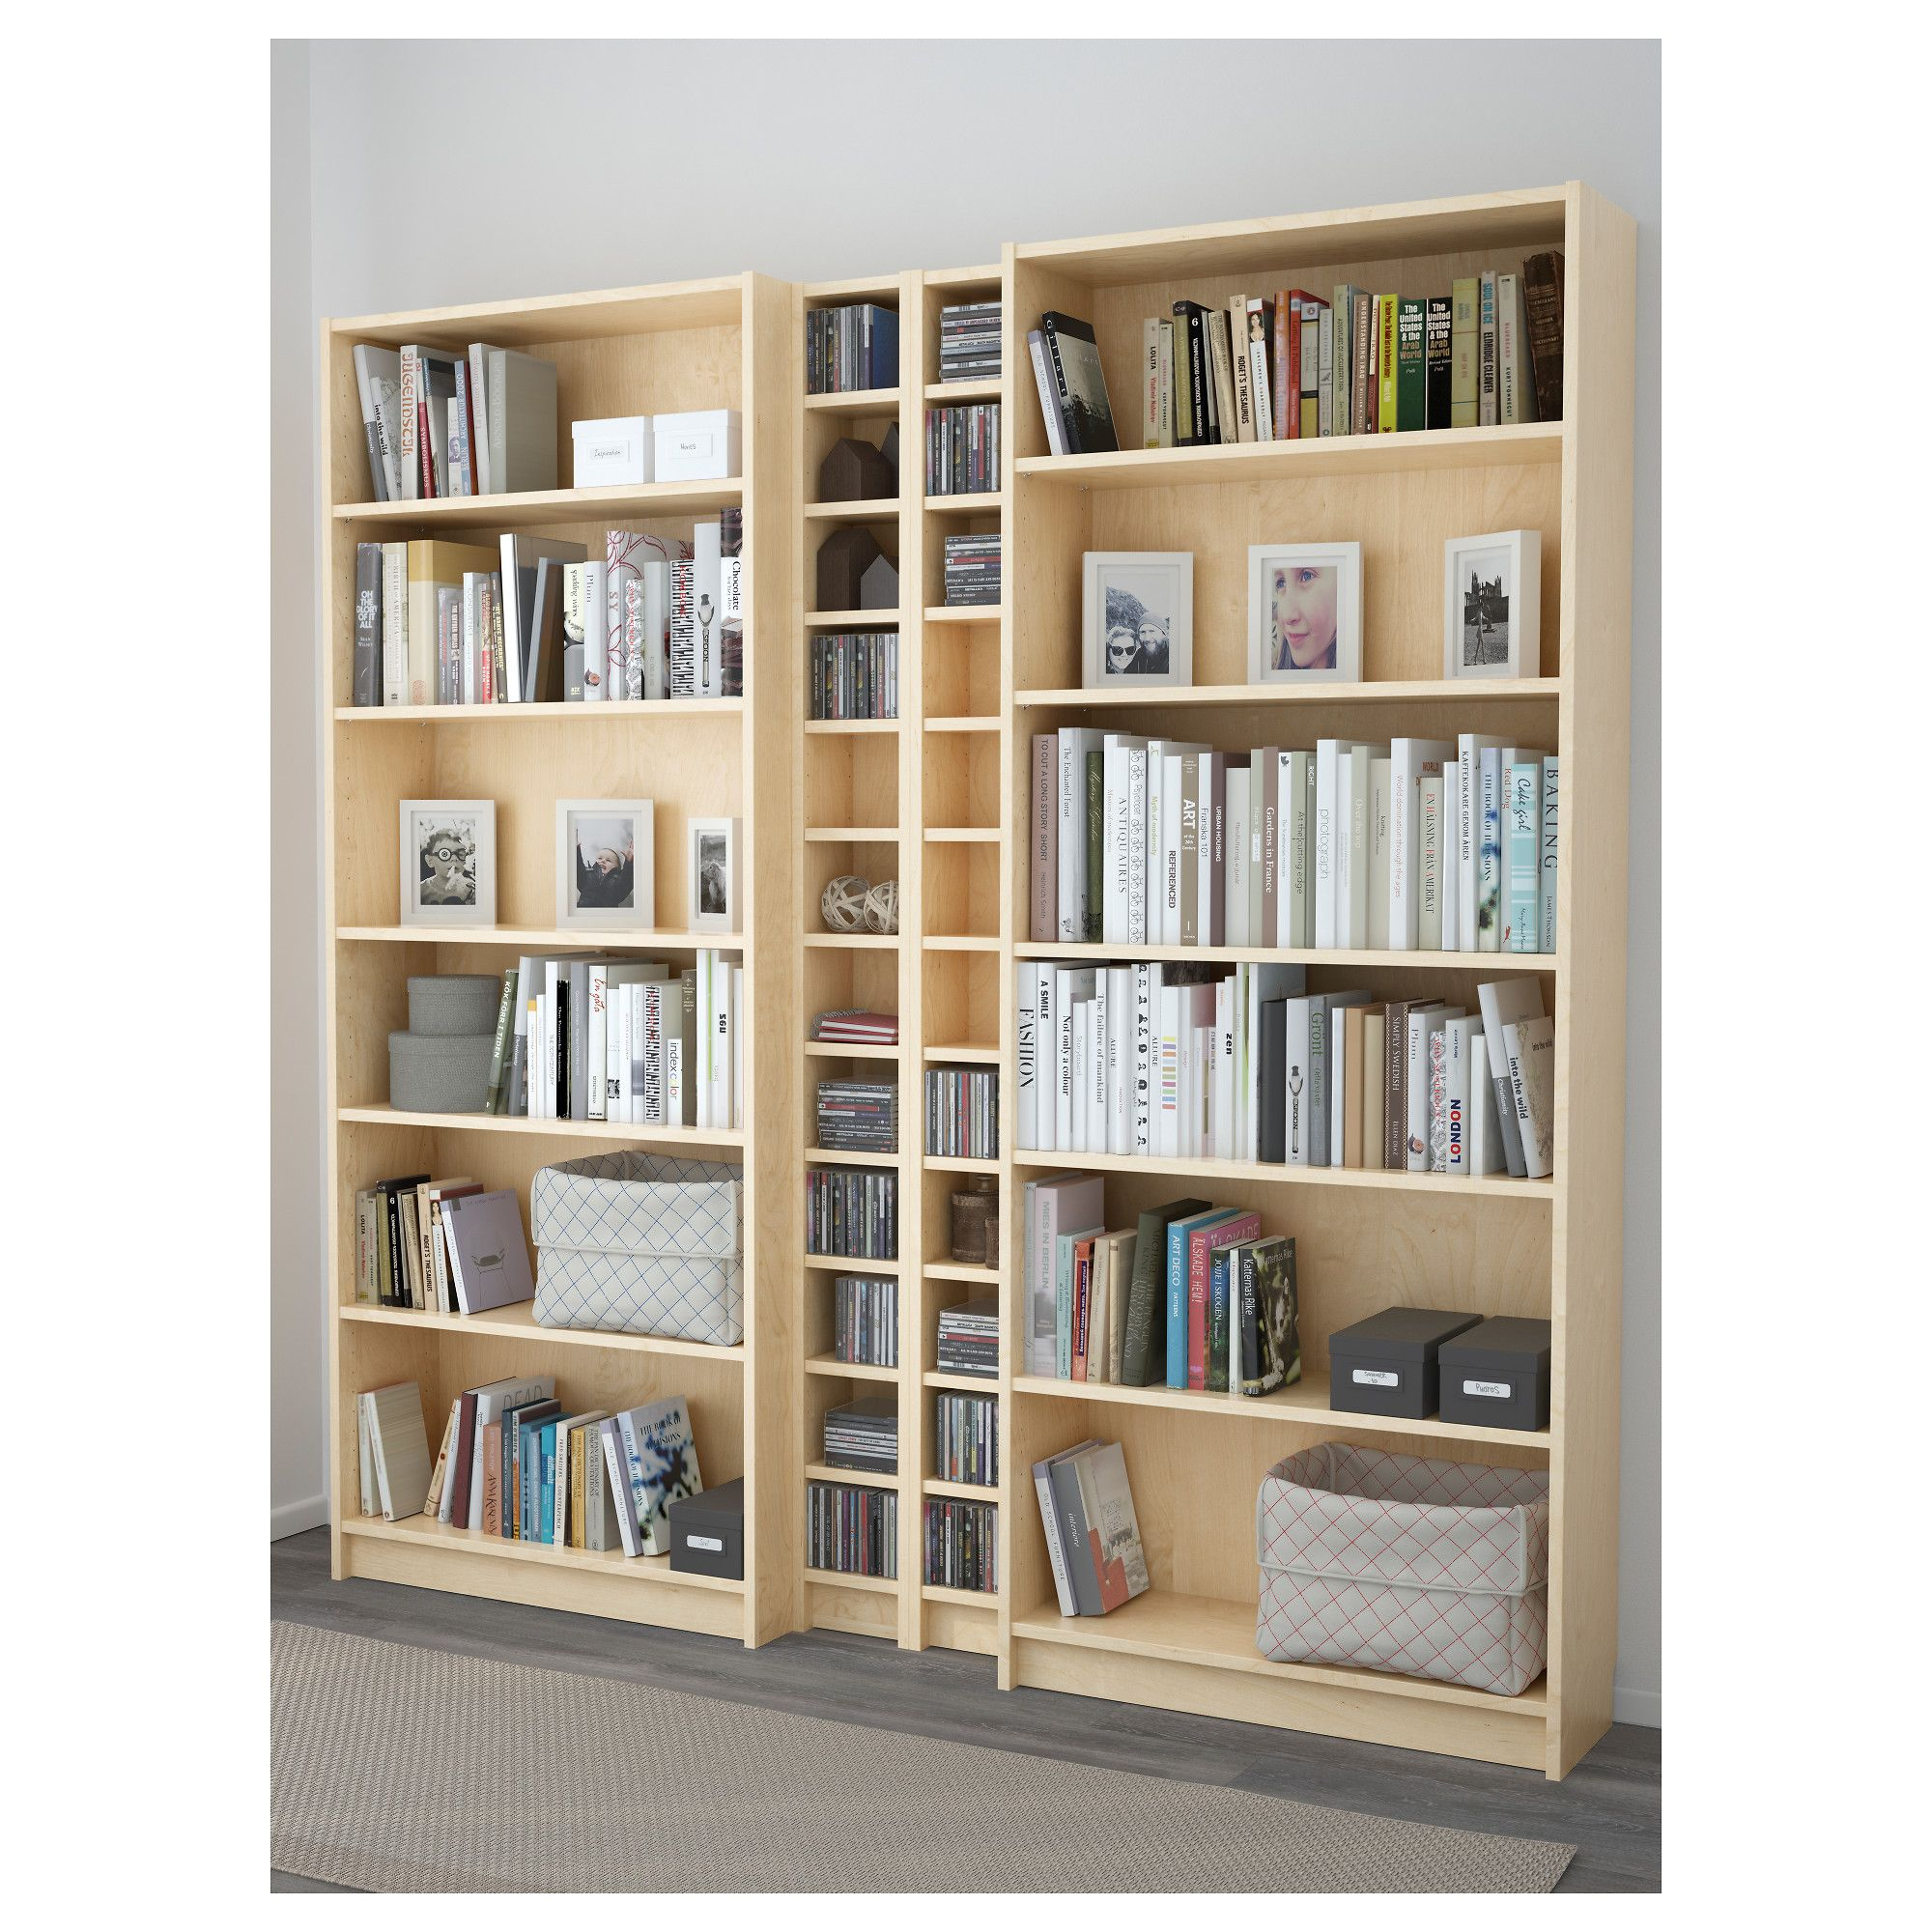 Pin di Paul Golding su living room shelves | Pinterest